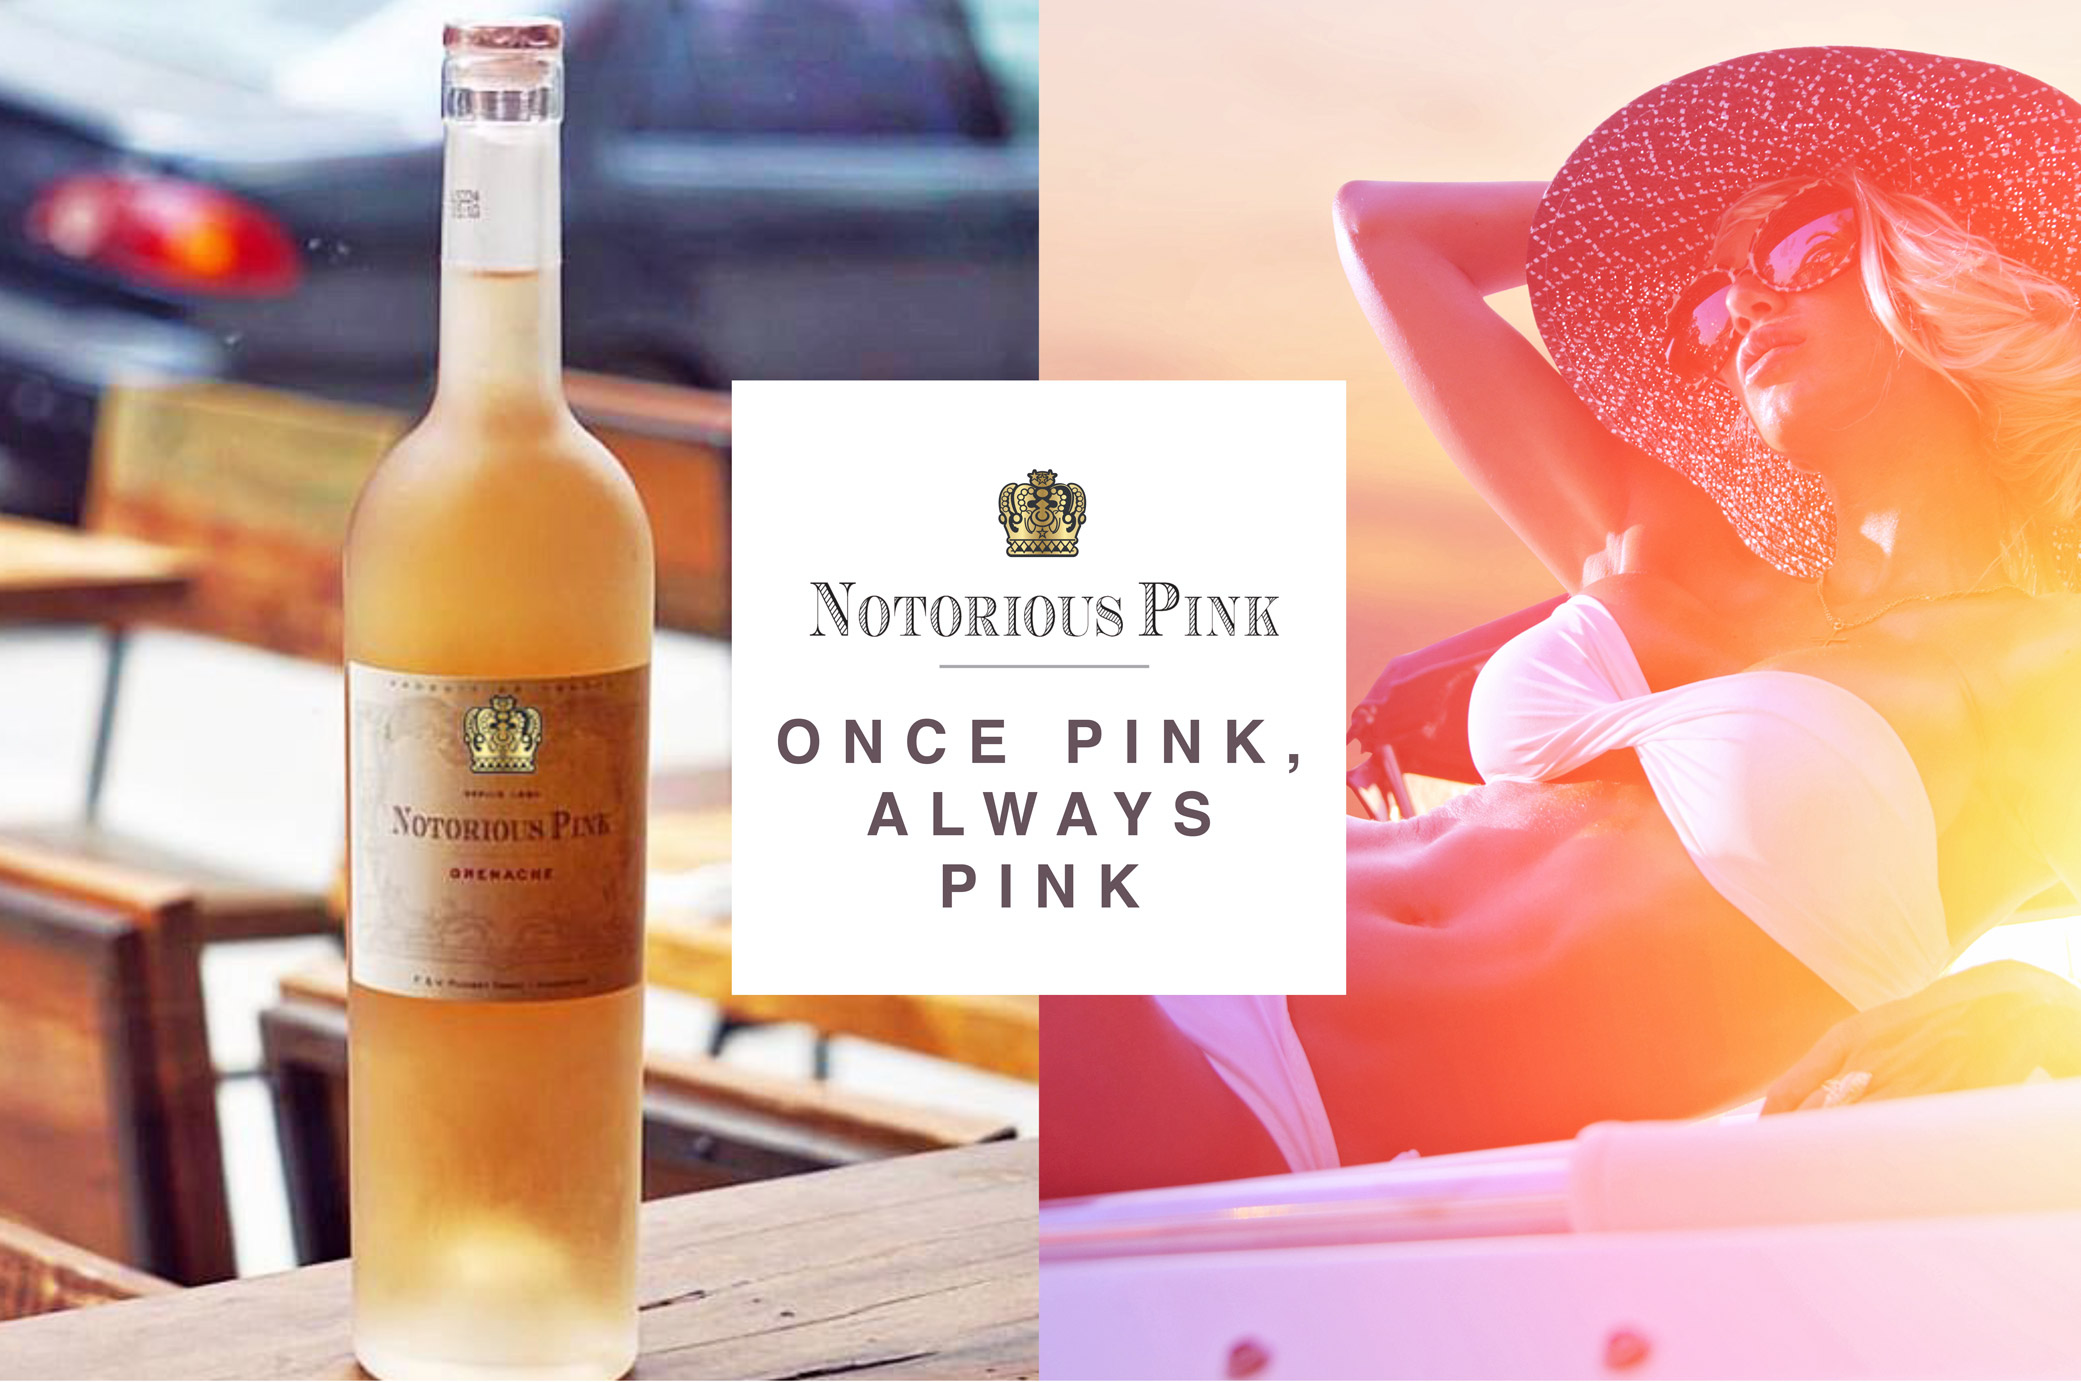 """Notorious Pink 'Global Brand' campaign showing a woman sun bathing and featured Rosé with """"Once Pink Always Pink"""" slogan."""